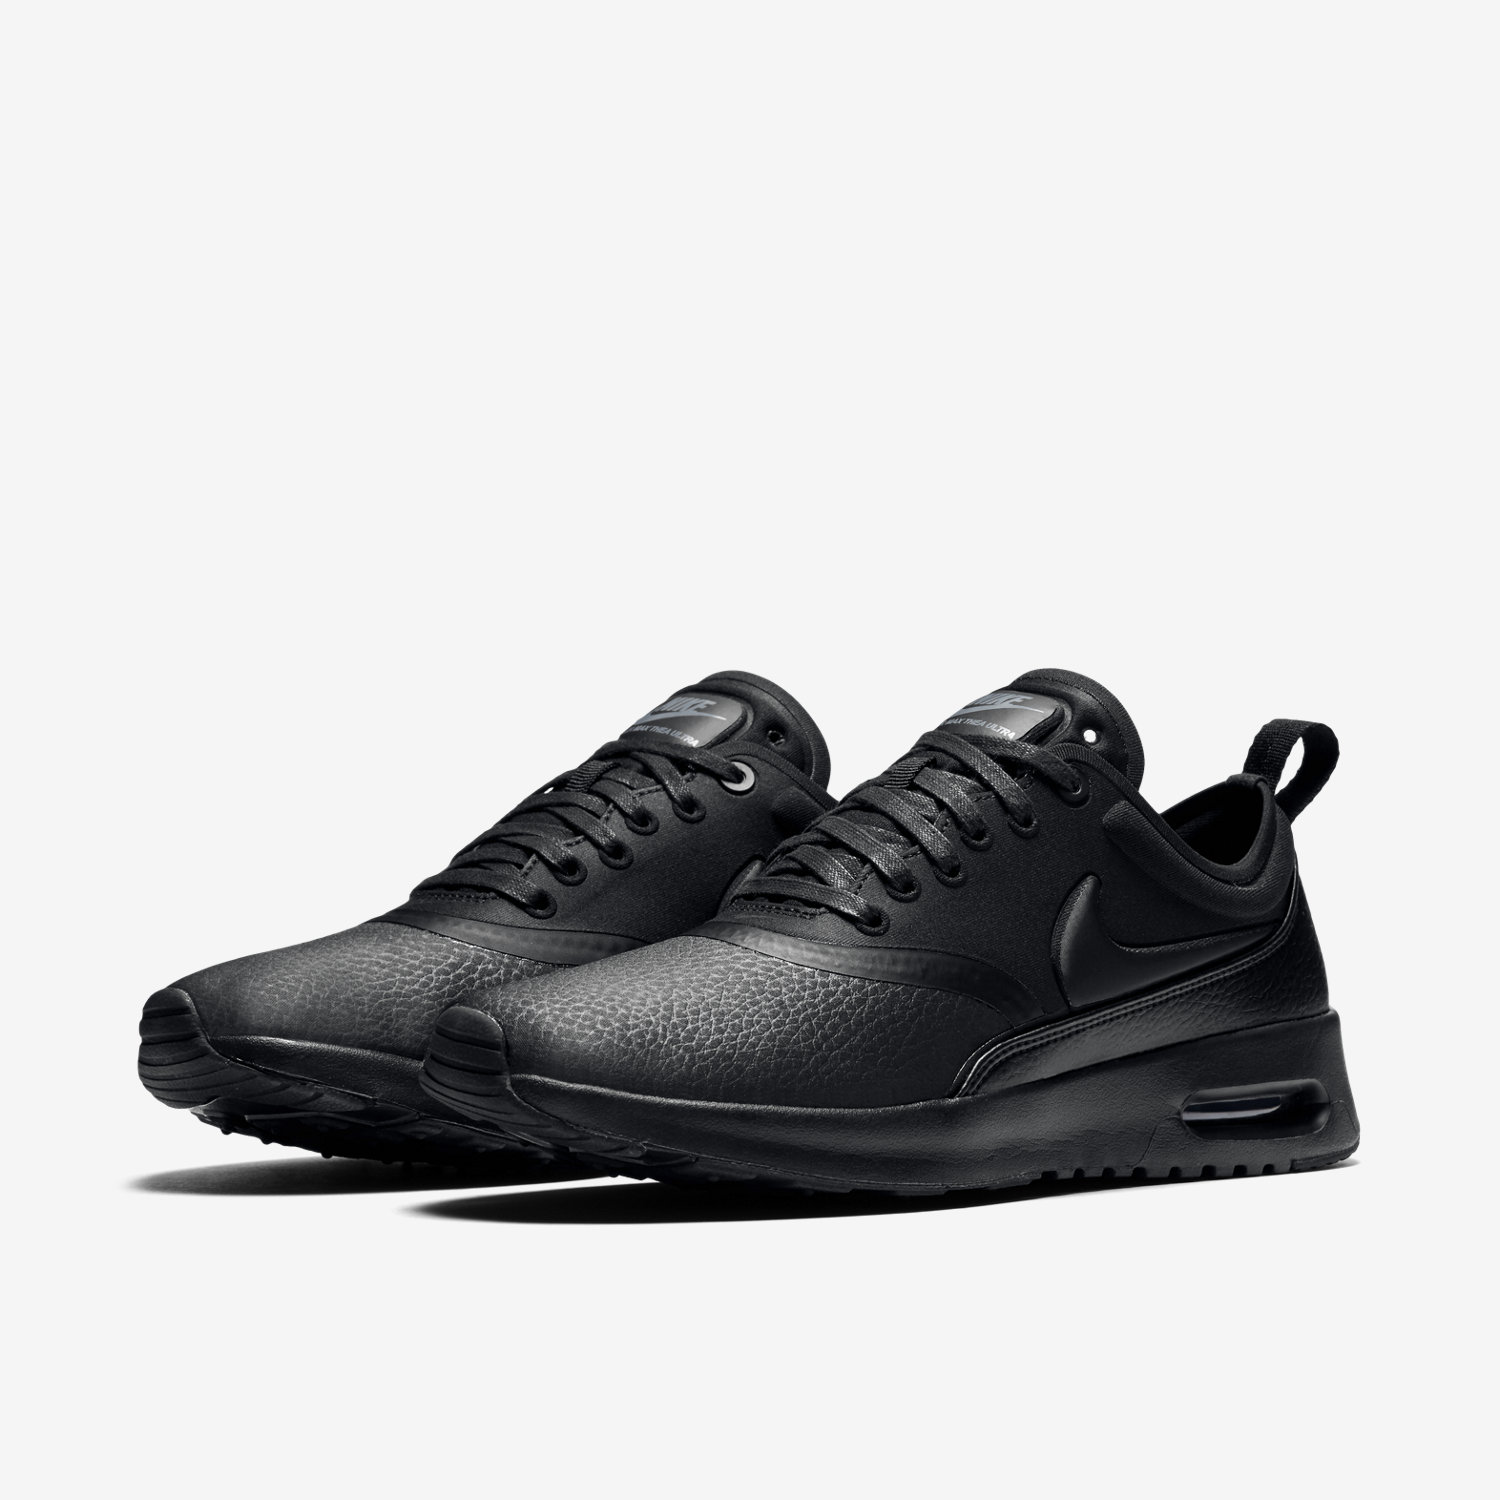 nouveaux styles 41450 3615b nike air max thea leather,air force 1 black high > OFF35 ...